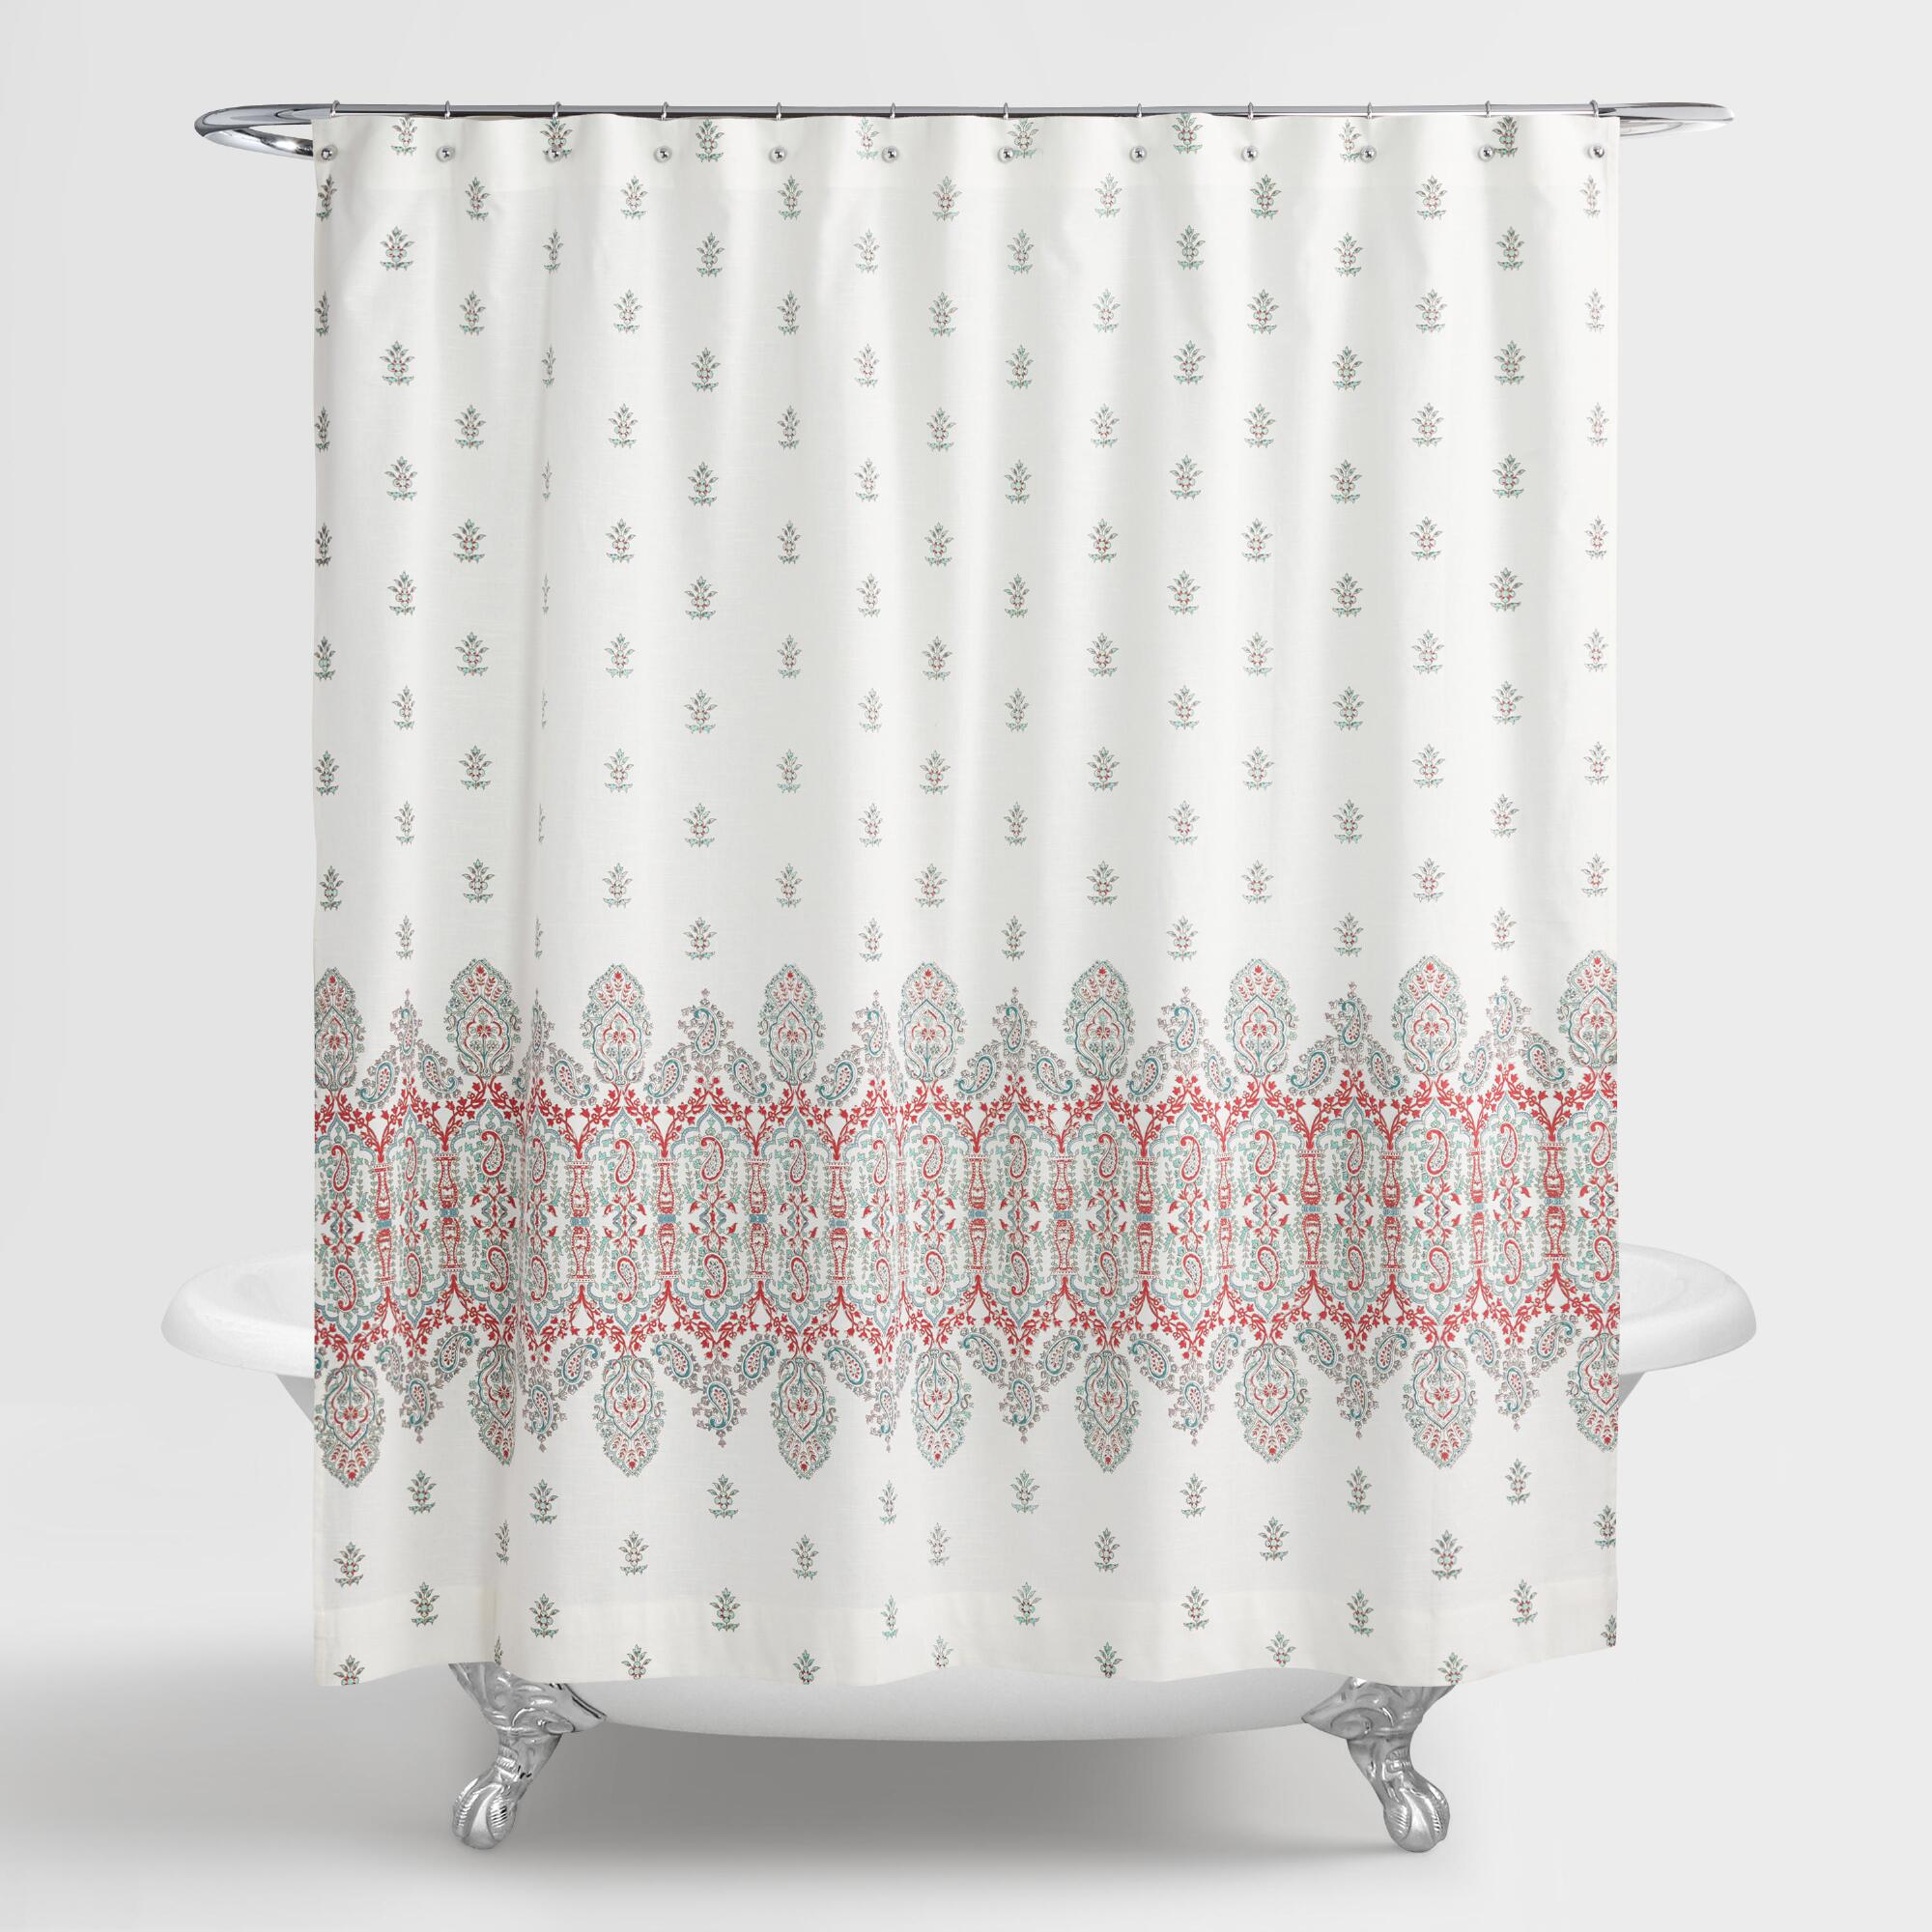 Online Shower Curtains India